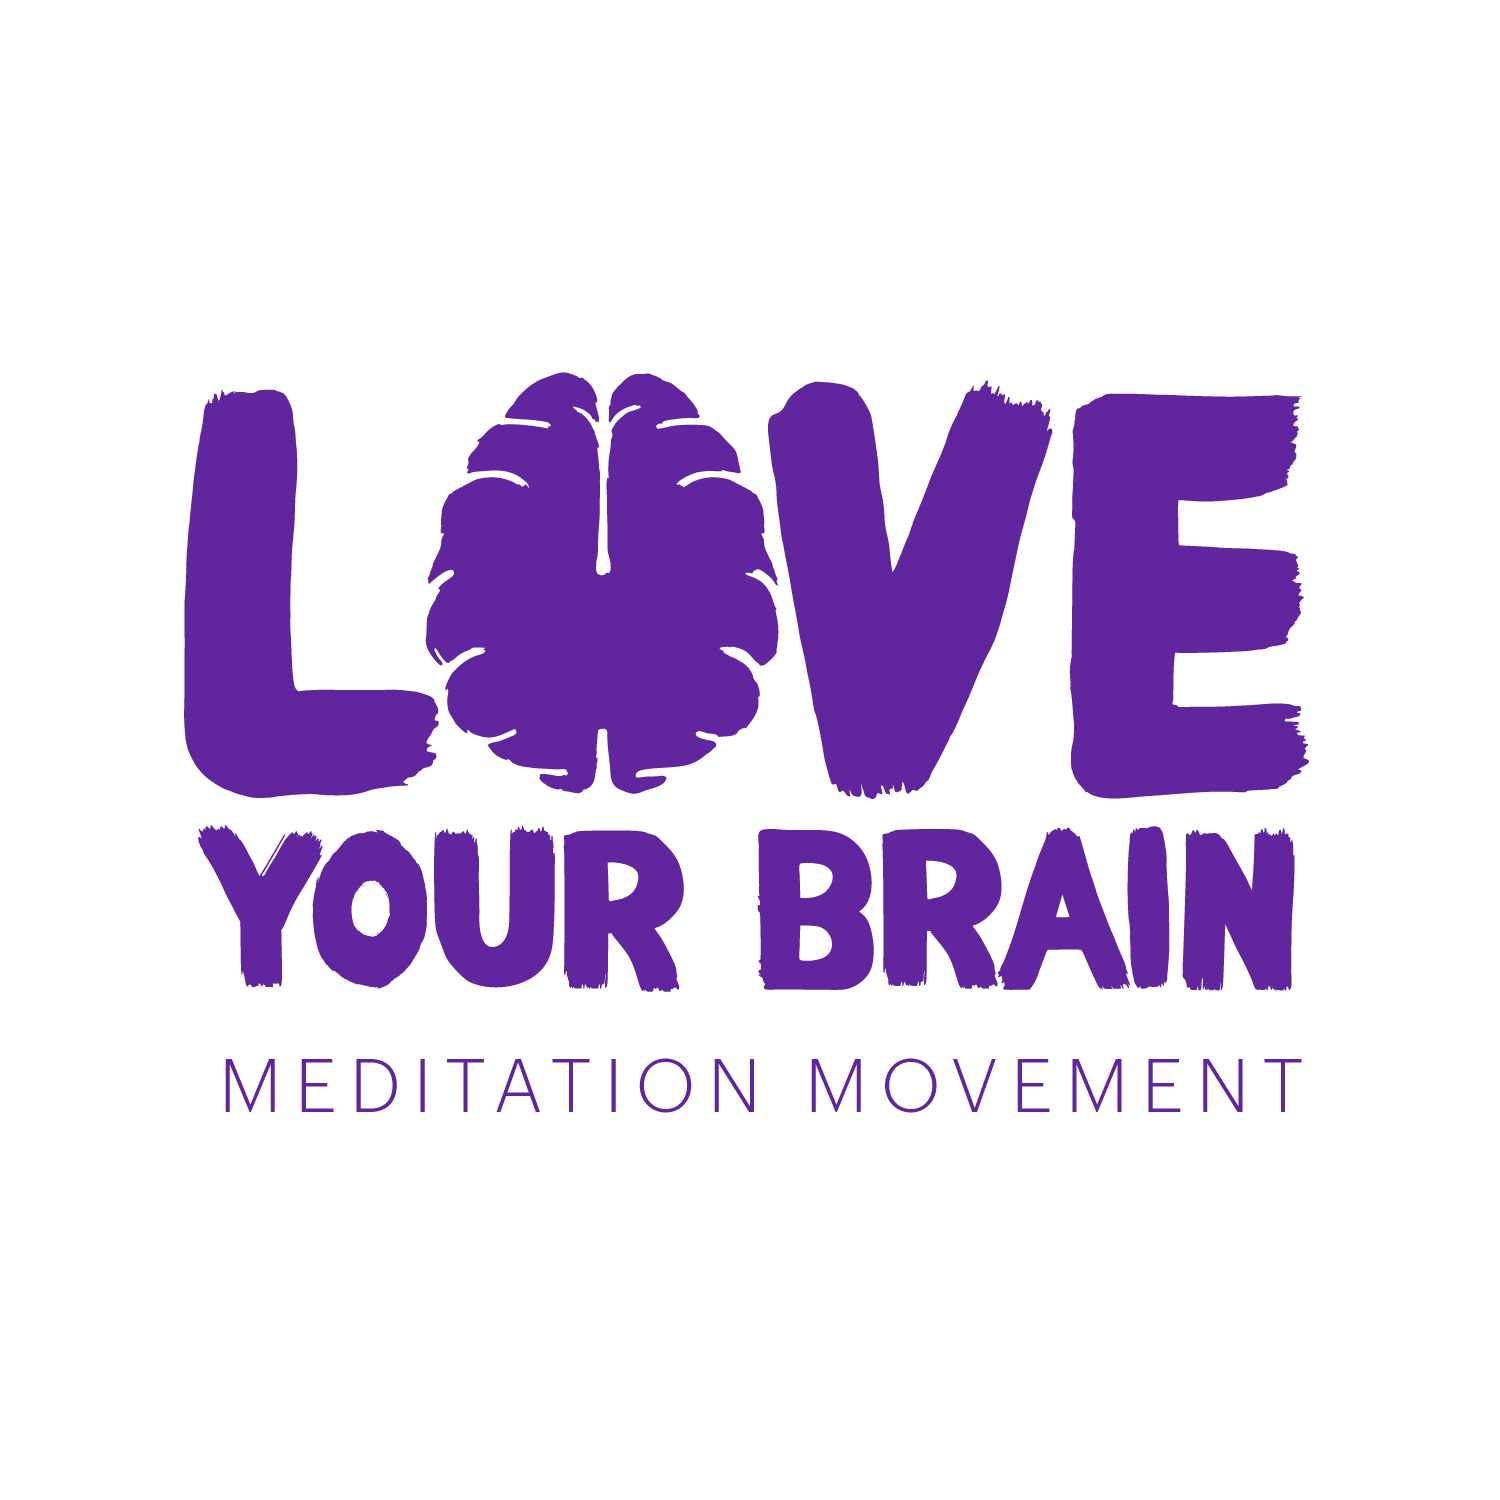 Meditation Movement - LoveYourBrain